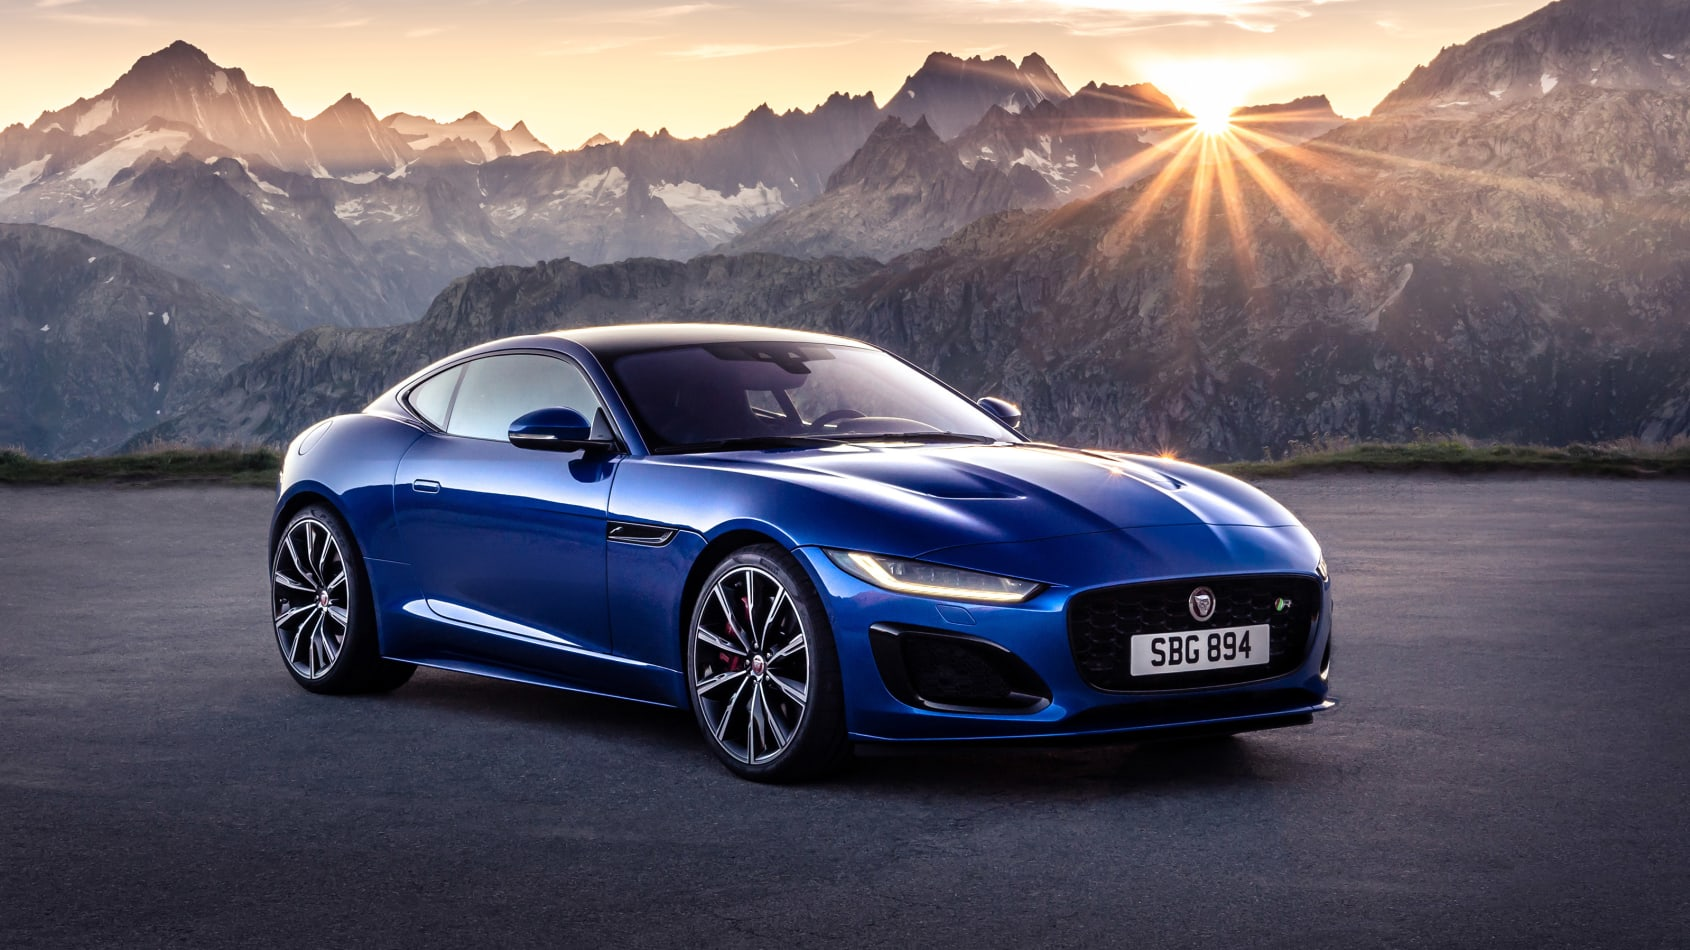 2020 Jaguar F-type -12